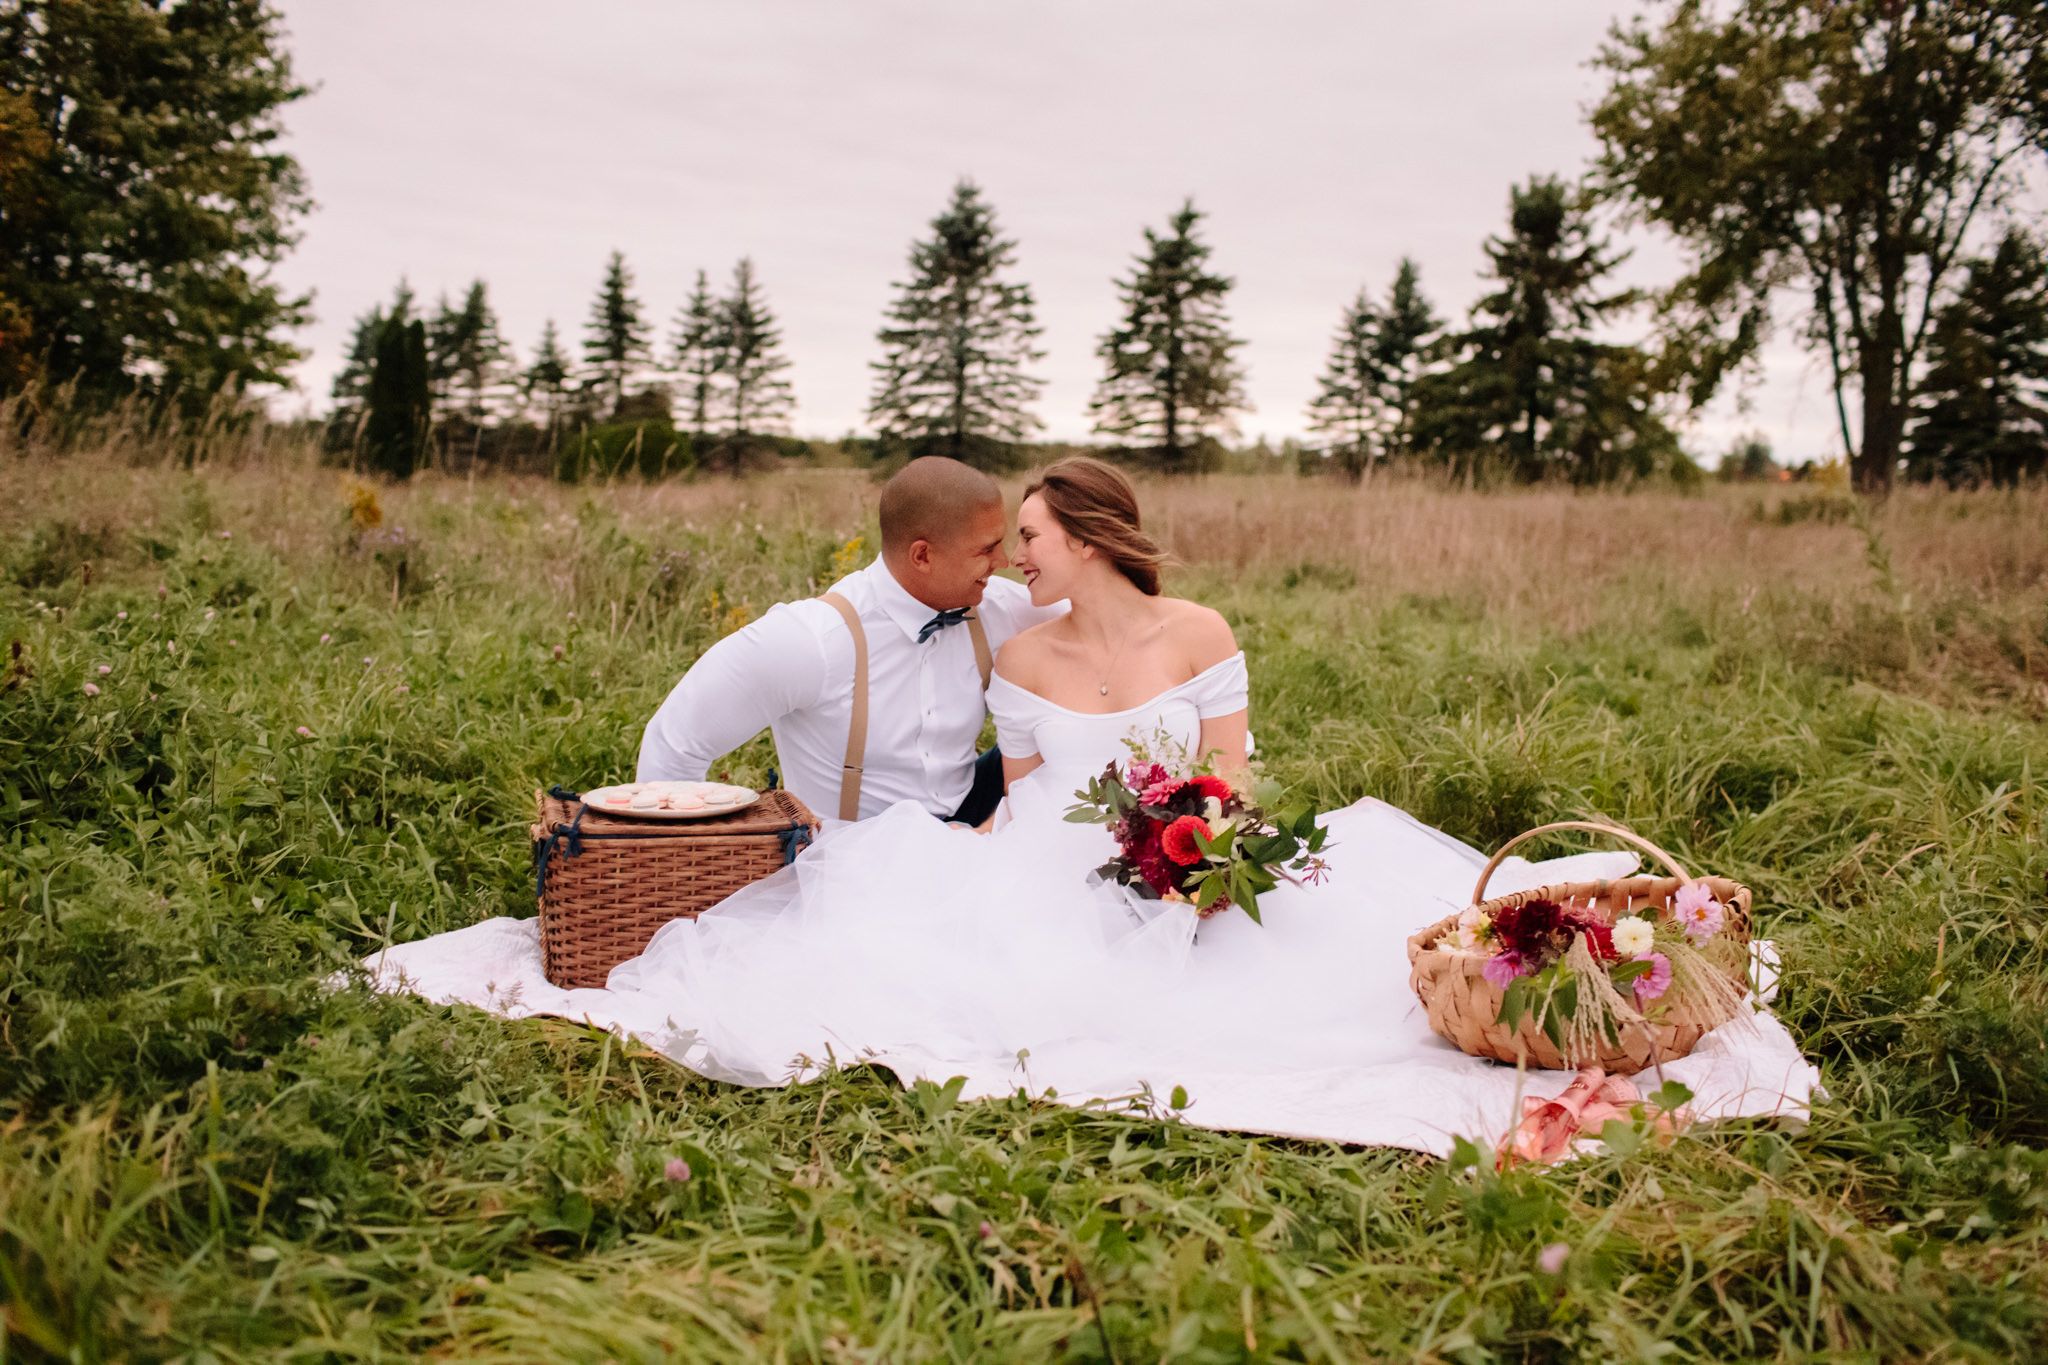 bride and groom having a wedding picnic in a field